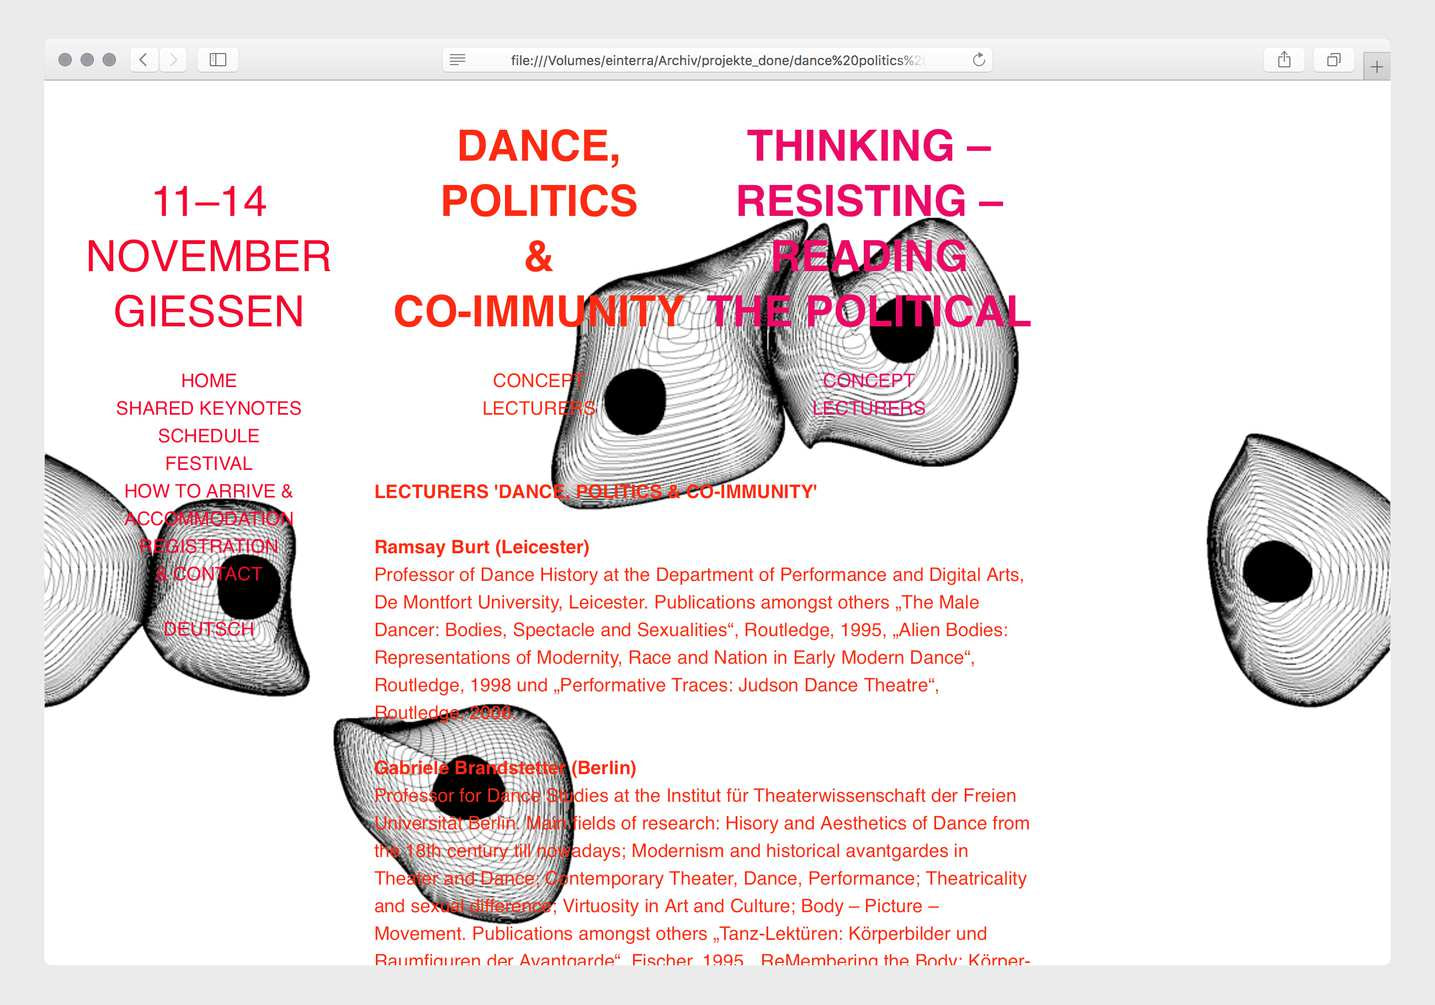 dance-politics-co-immunity-website-3-1435x1004px